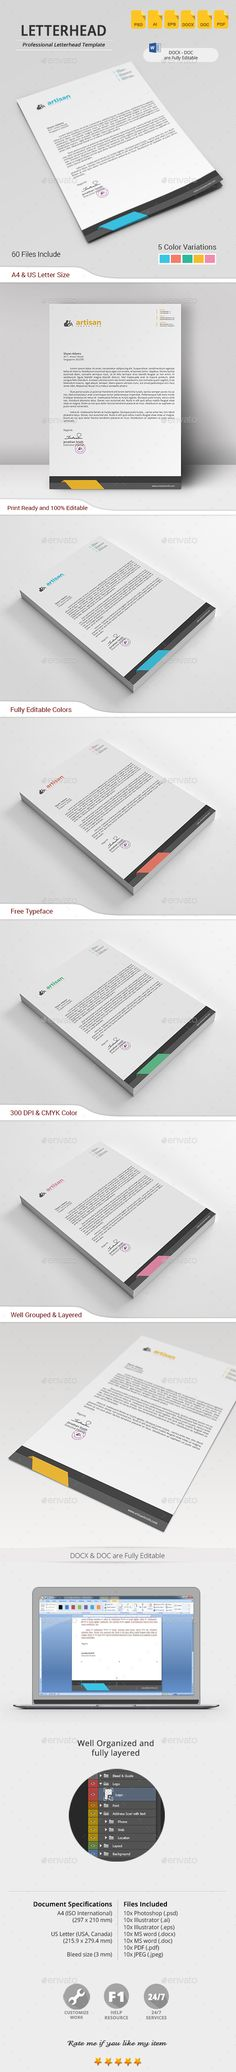 Letterhead Stationery, Templates and Design templates